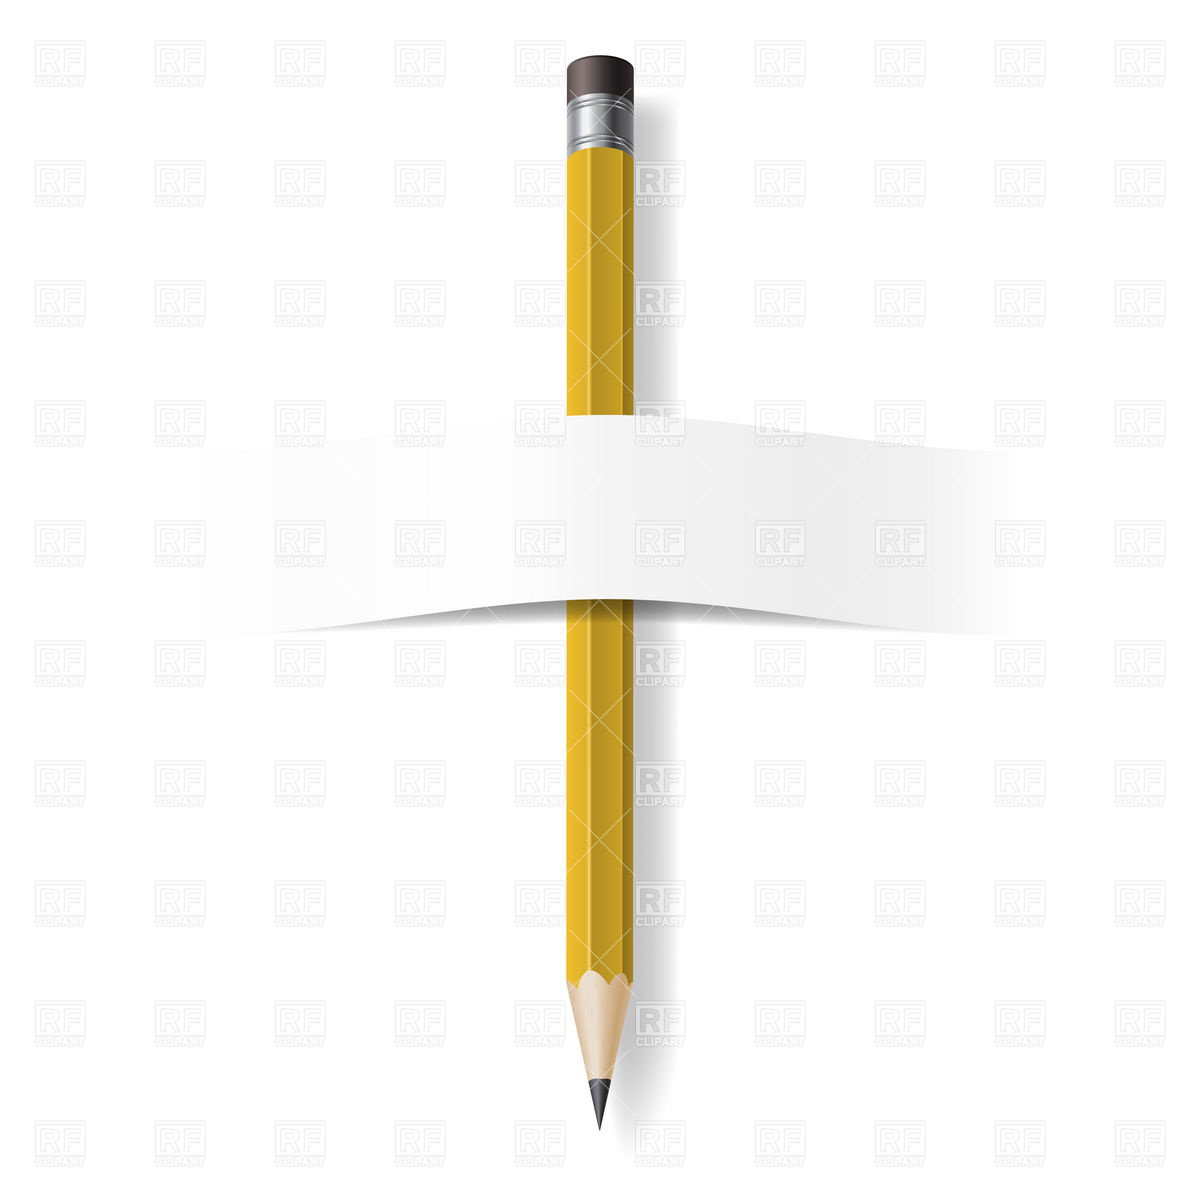 Pencil With Eraser Download Royalty Free Vector Clipart  Eps